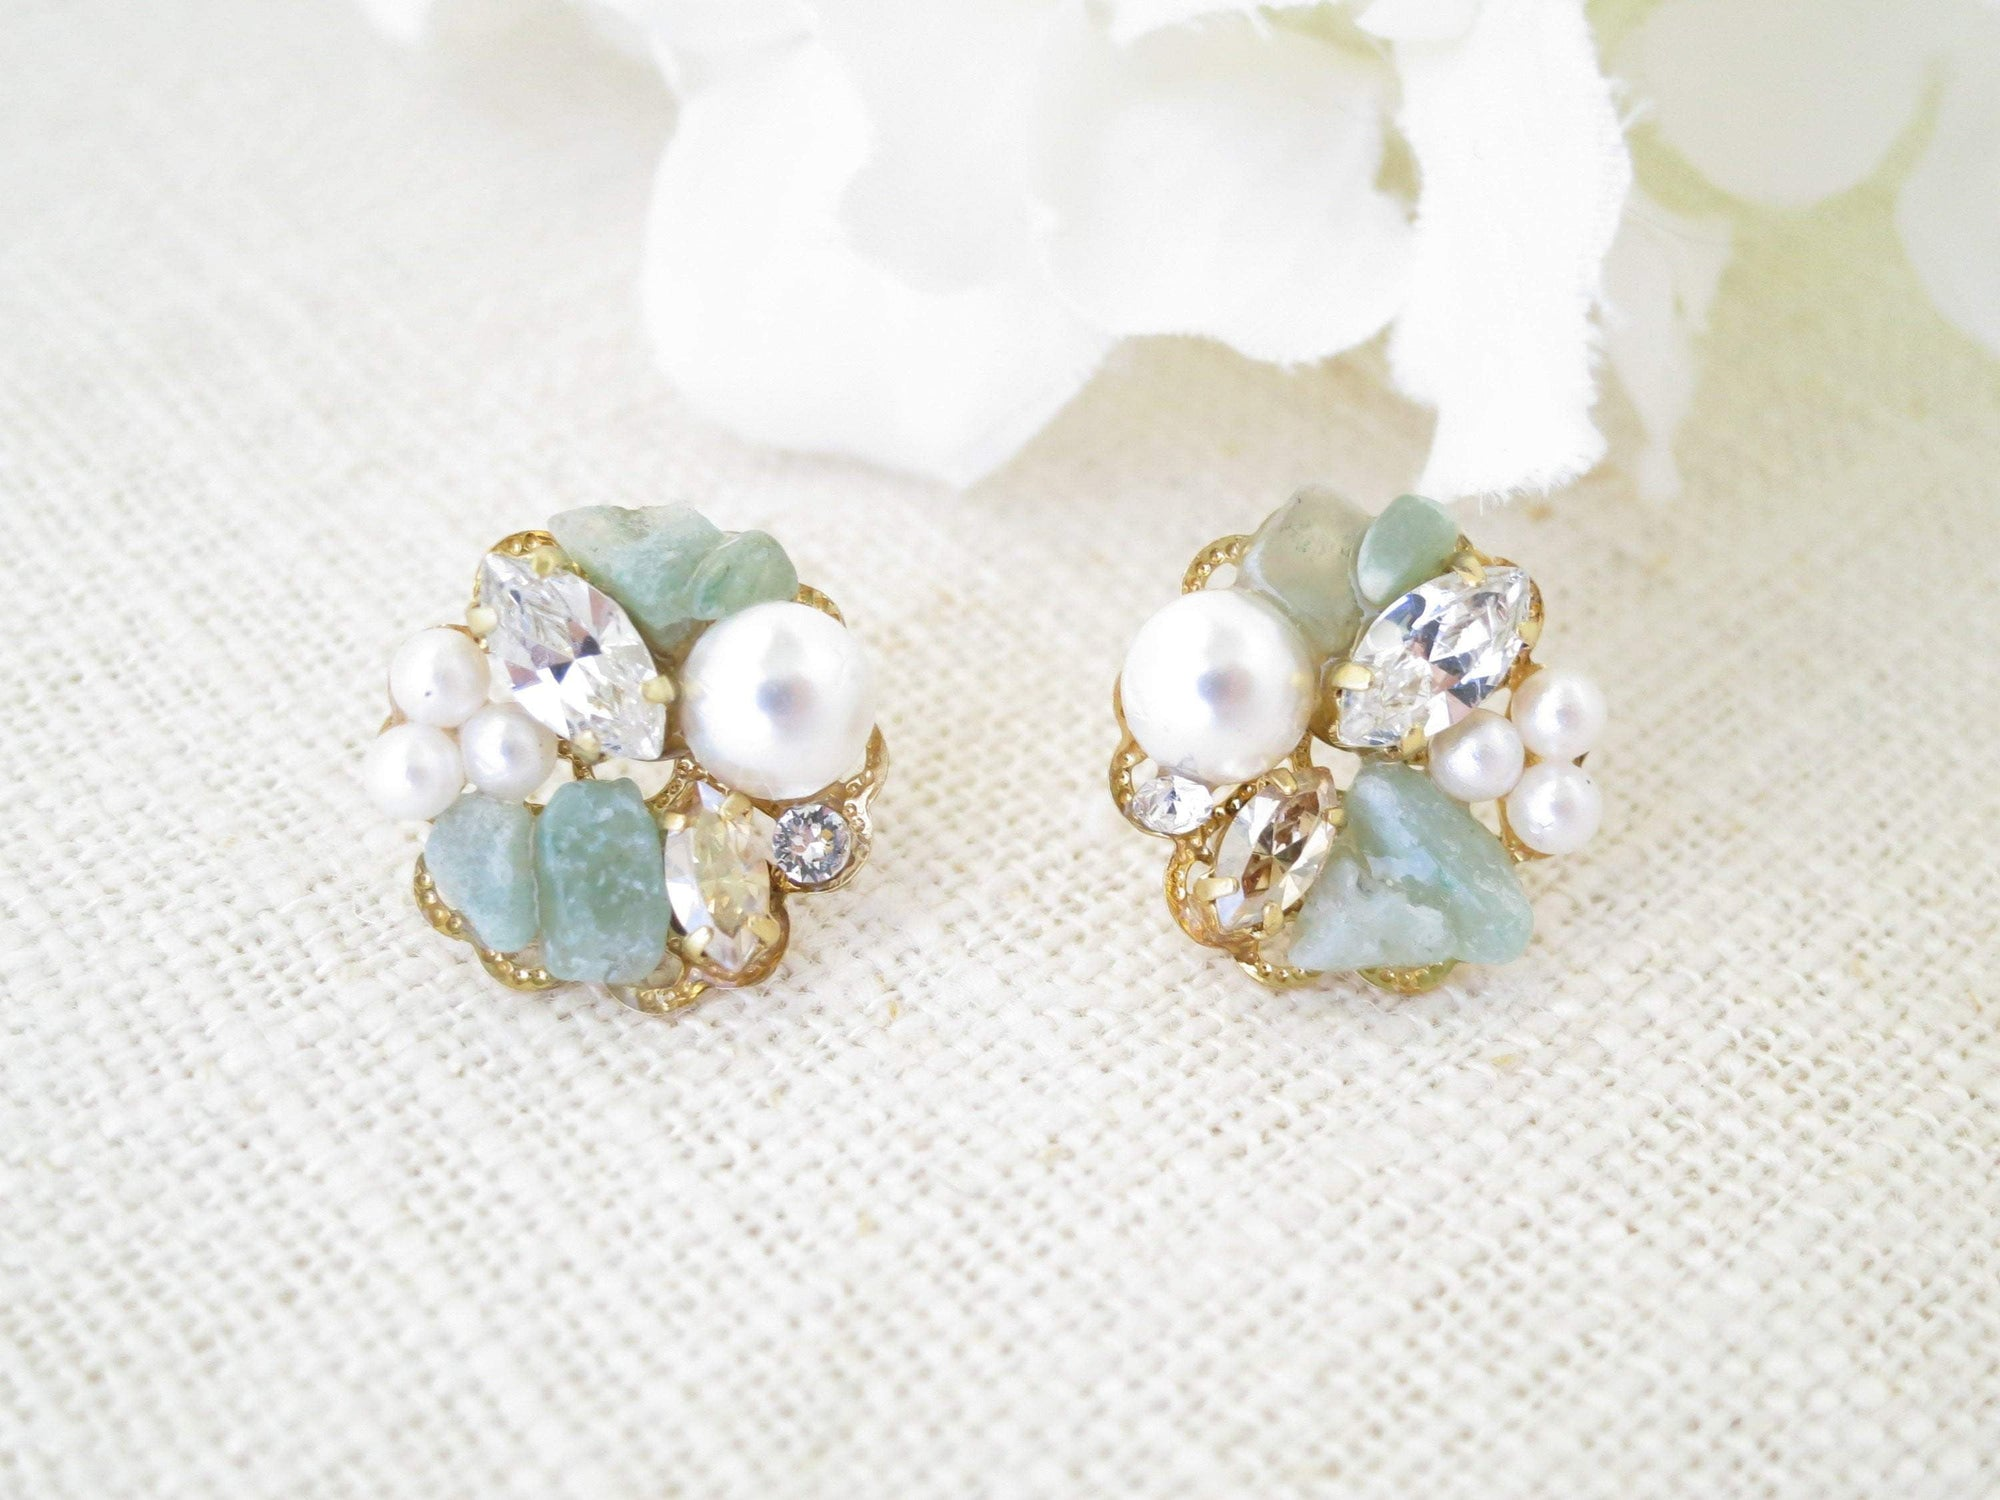 BAILEY:  Green Gemstone Cluster Stud Earrings - BlingBaddaBoom - Minimalist, Vintage, Modern Wedding and Bridal Jewelry